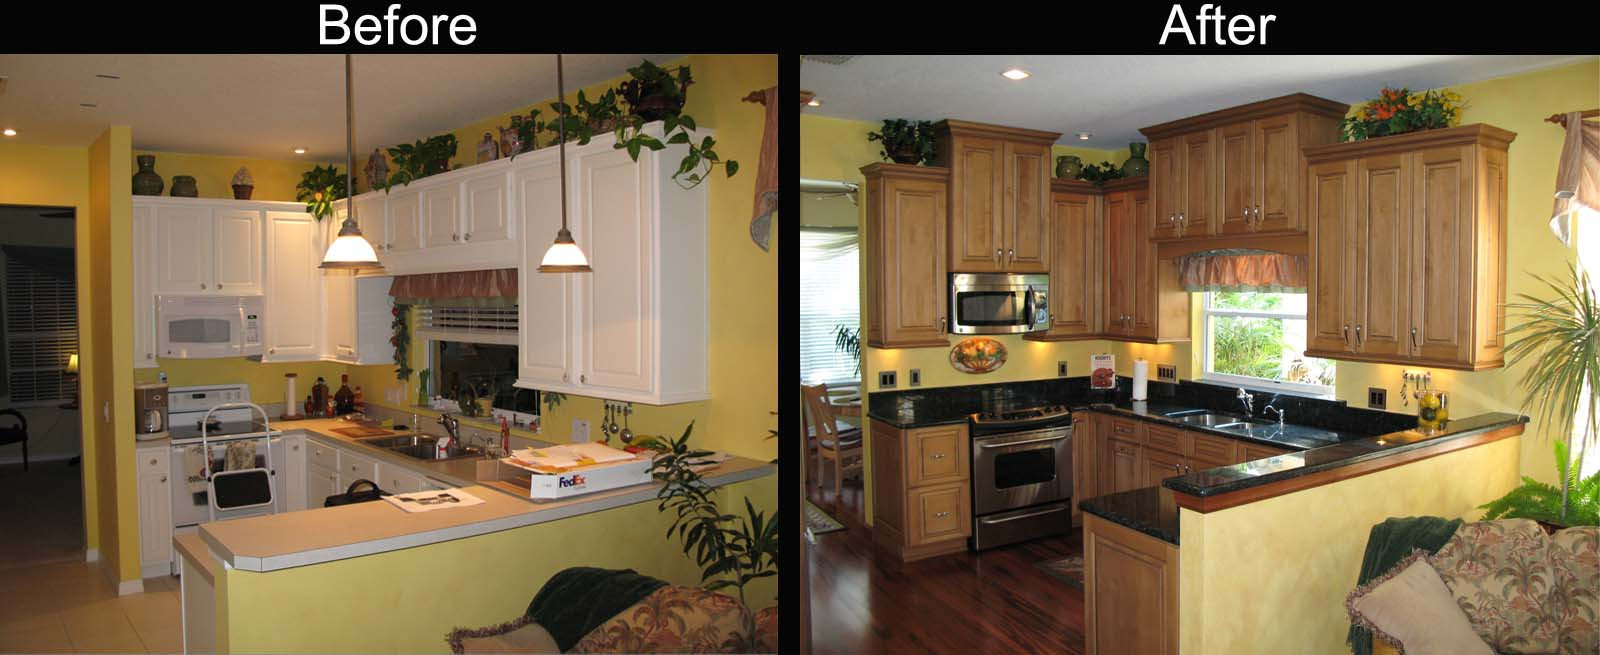 Kitchen Remodel Before And After  Kitchen Decor Kitchen Remodel Before And After